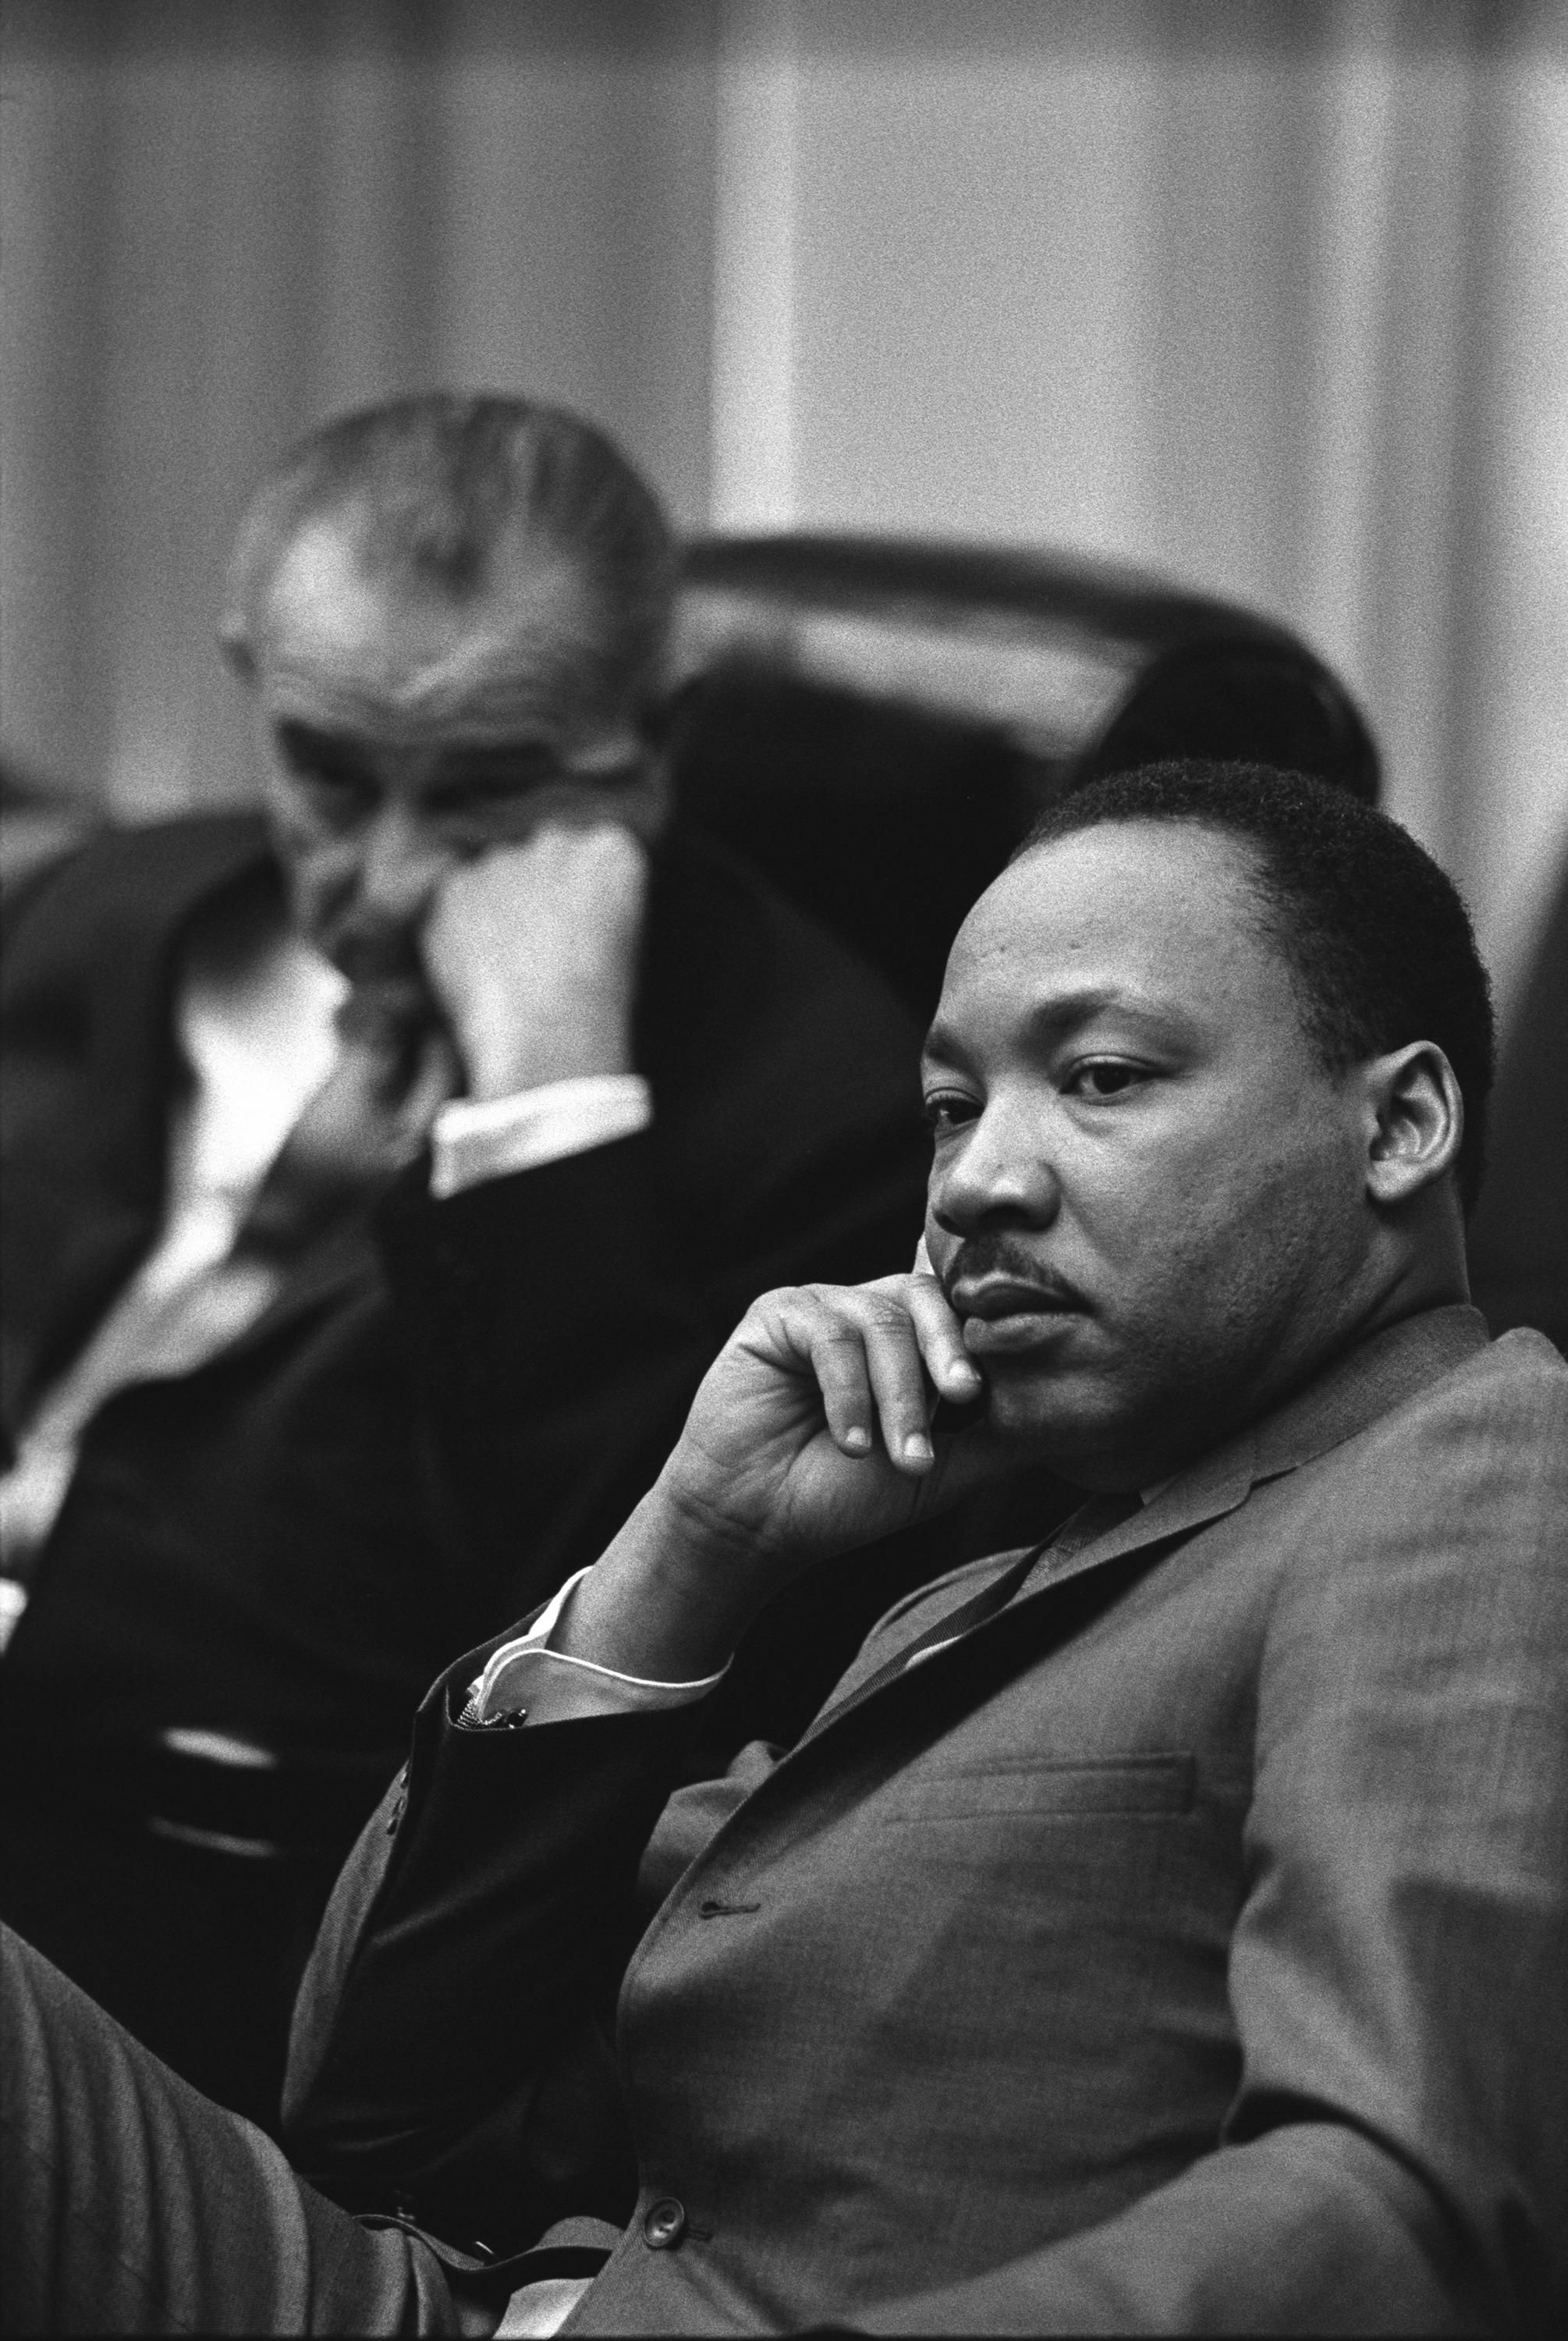 The Rev. Martin Luther King Jr. and Lyndon B. Johnson (LBJ Library)